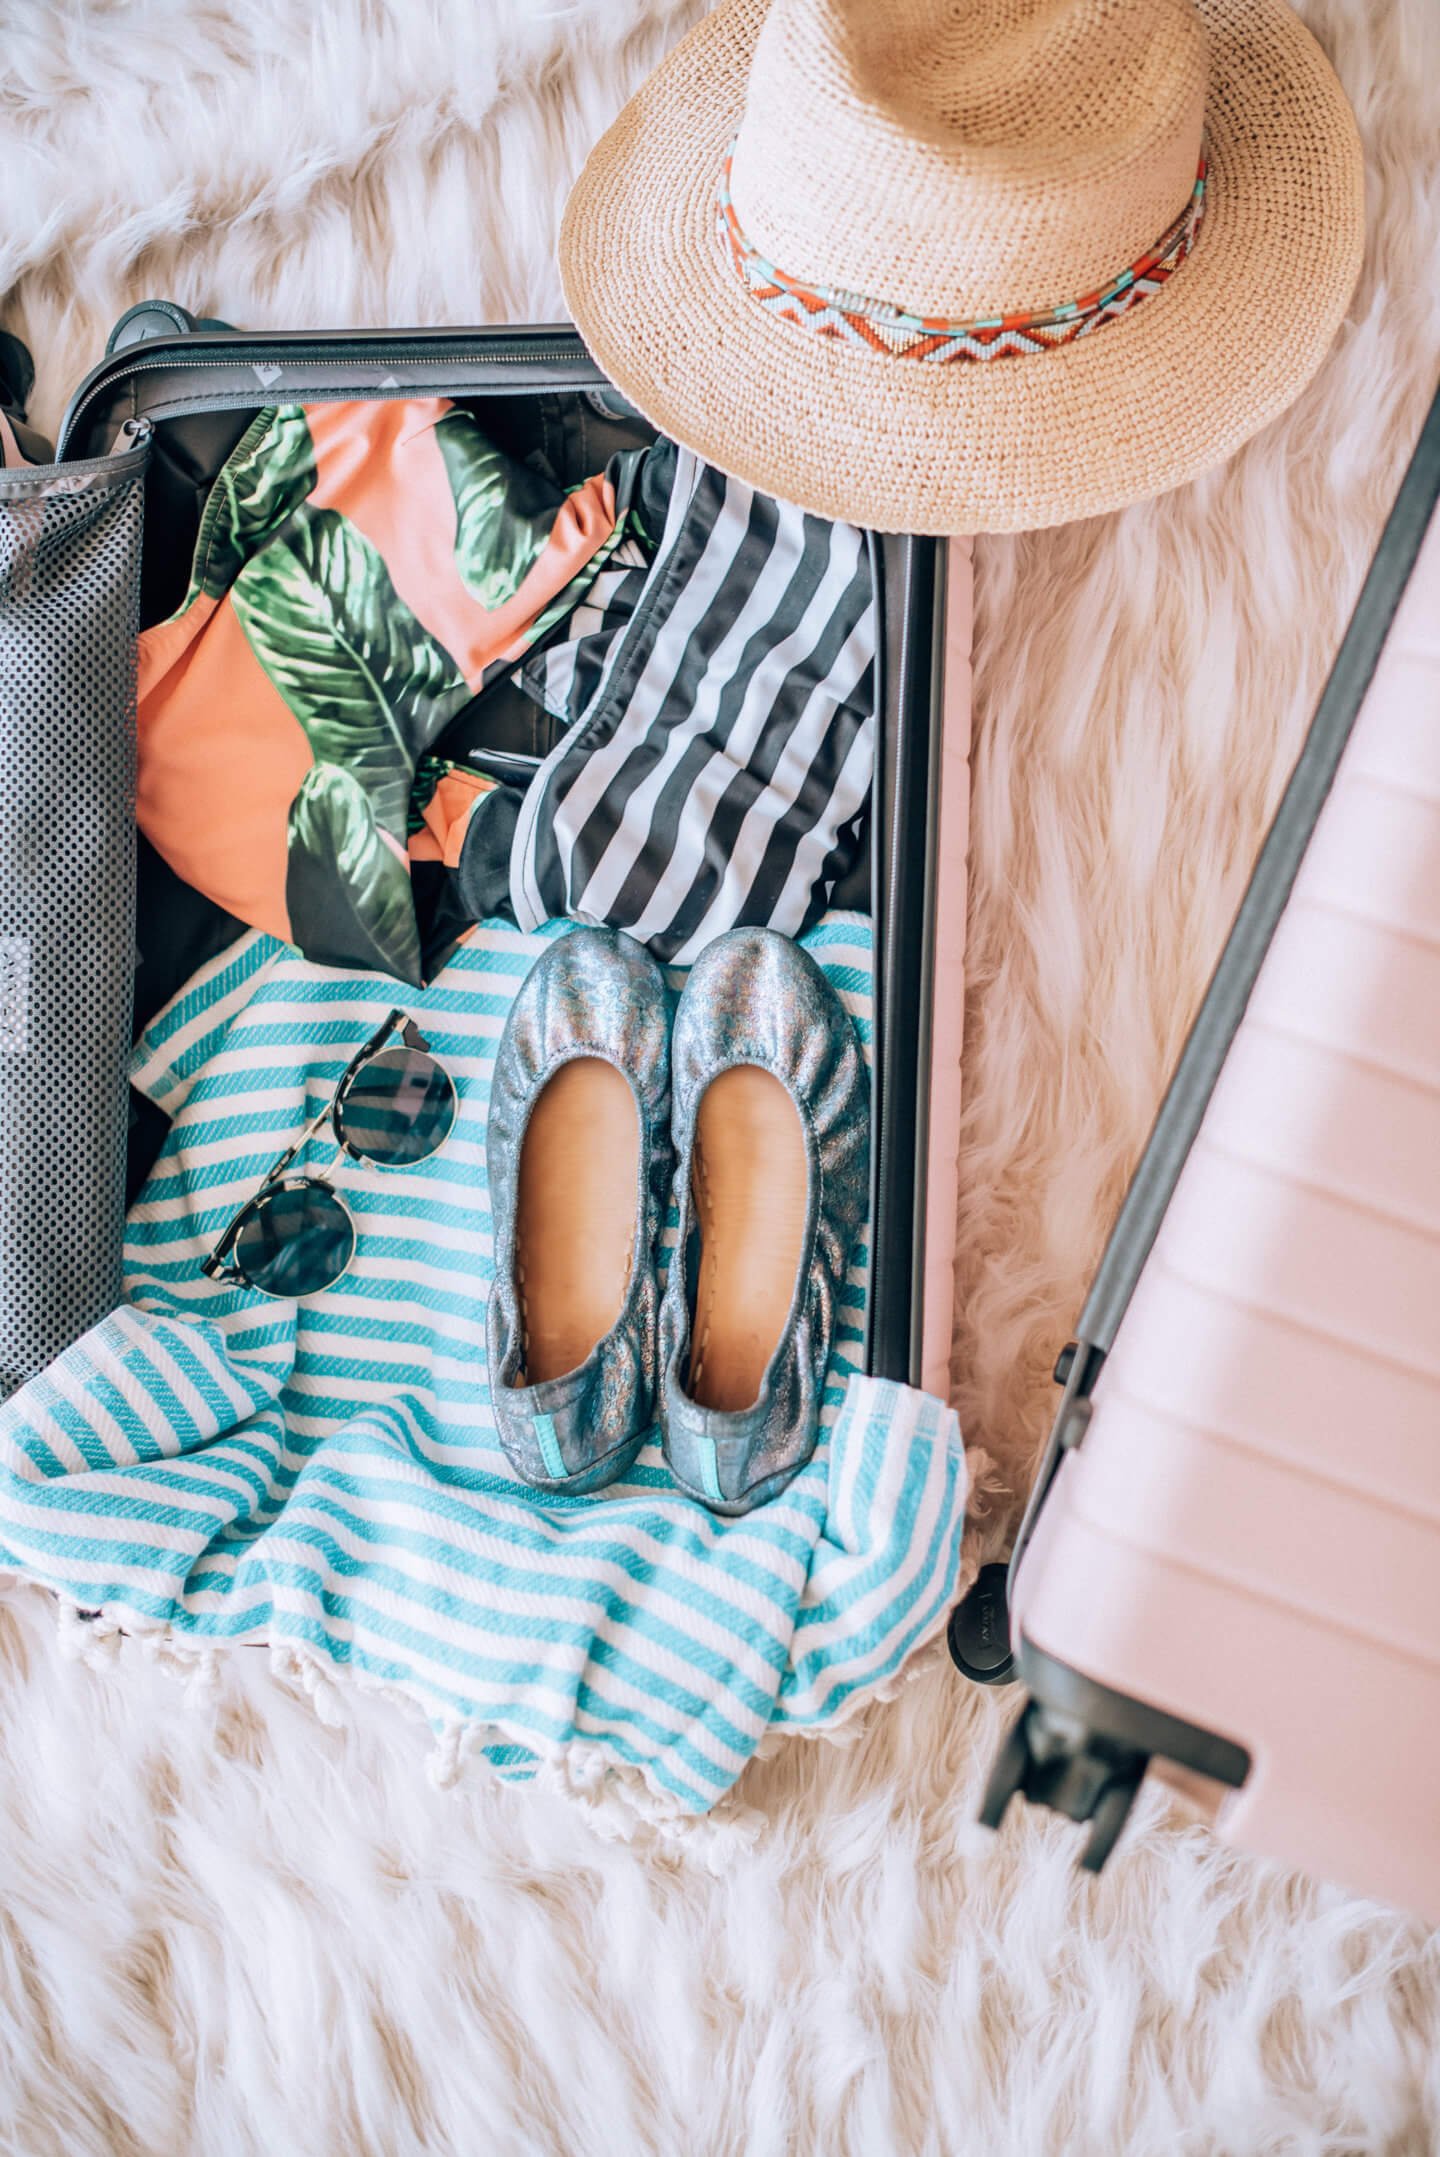 Tieks: your New Favorite Travel Shoes